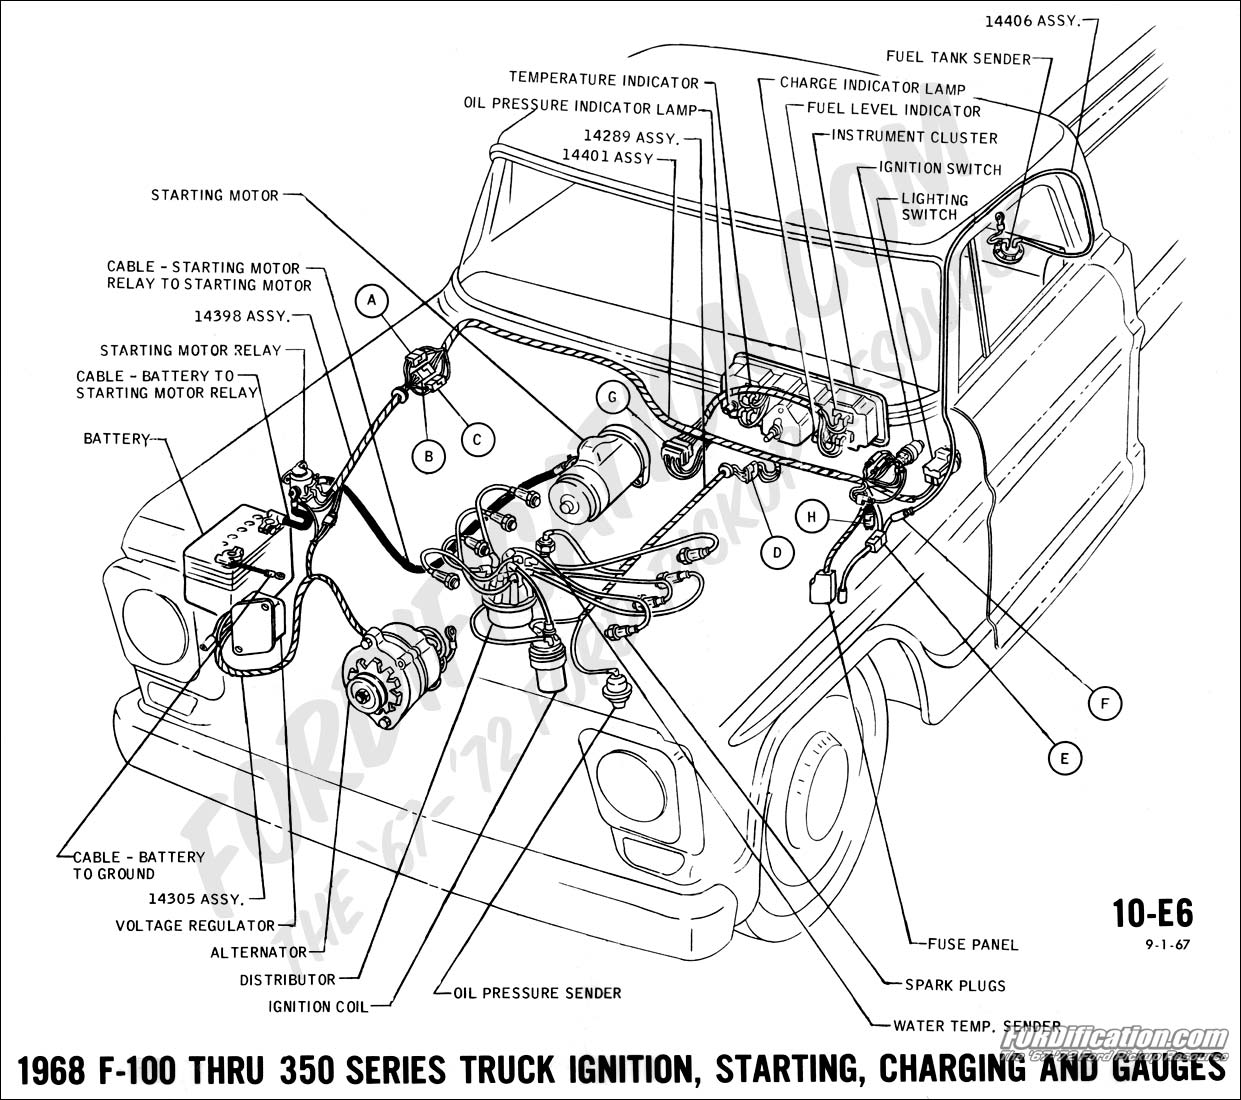 Ford Truck Technical Drawings And Schematics Section H Wiring Diagram Single Light Switch With Plugs 1968 F 100 Thru 350 Ignition Starting Charging Gauges